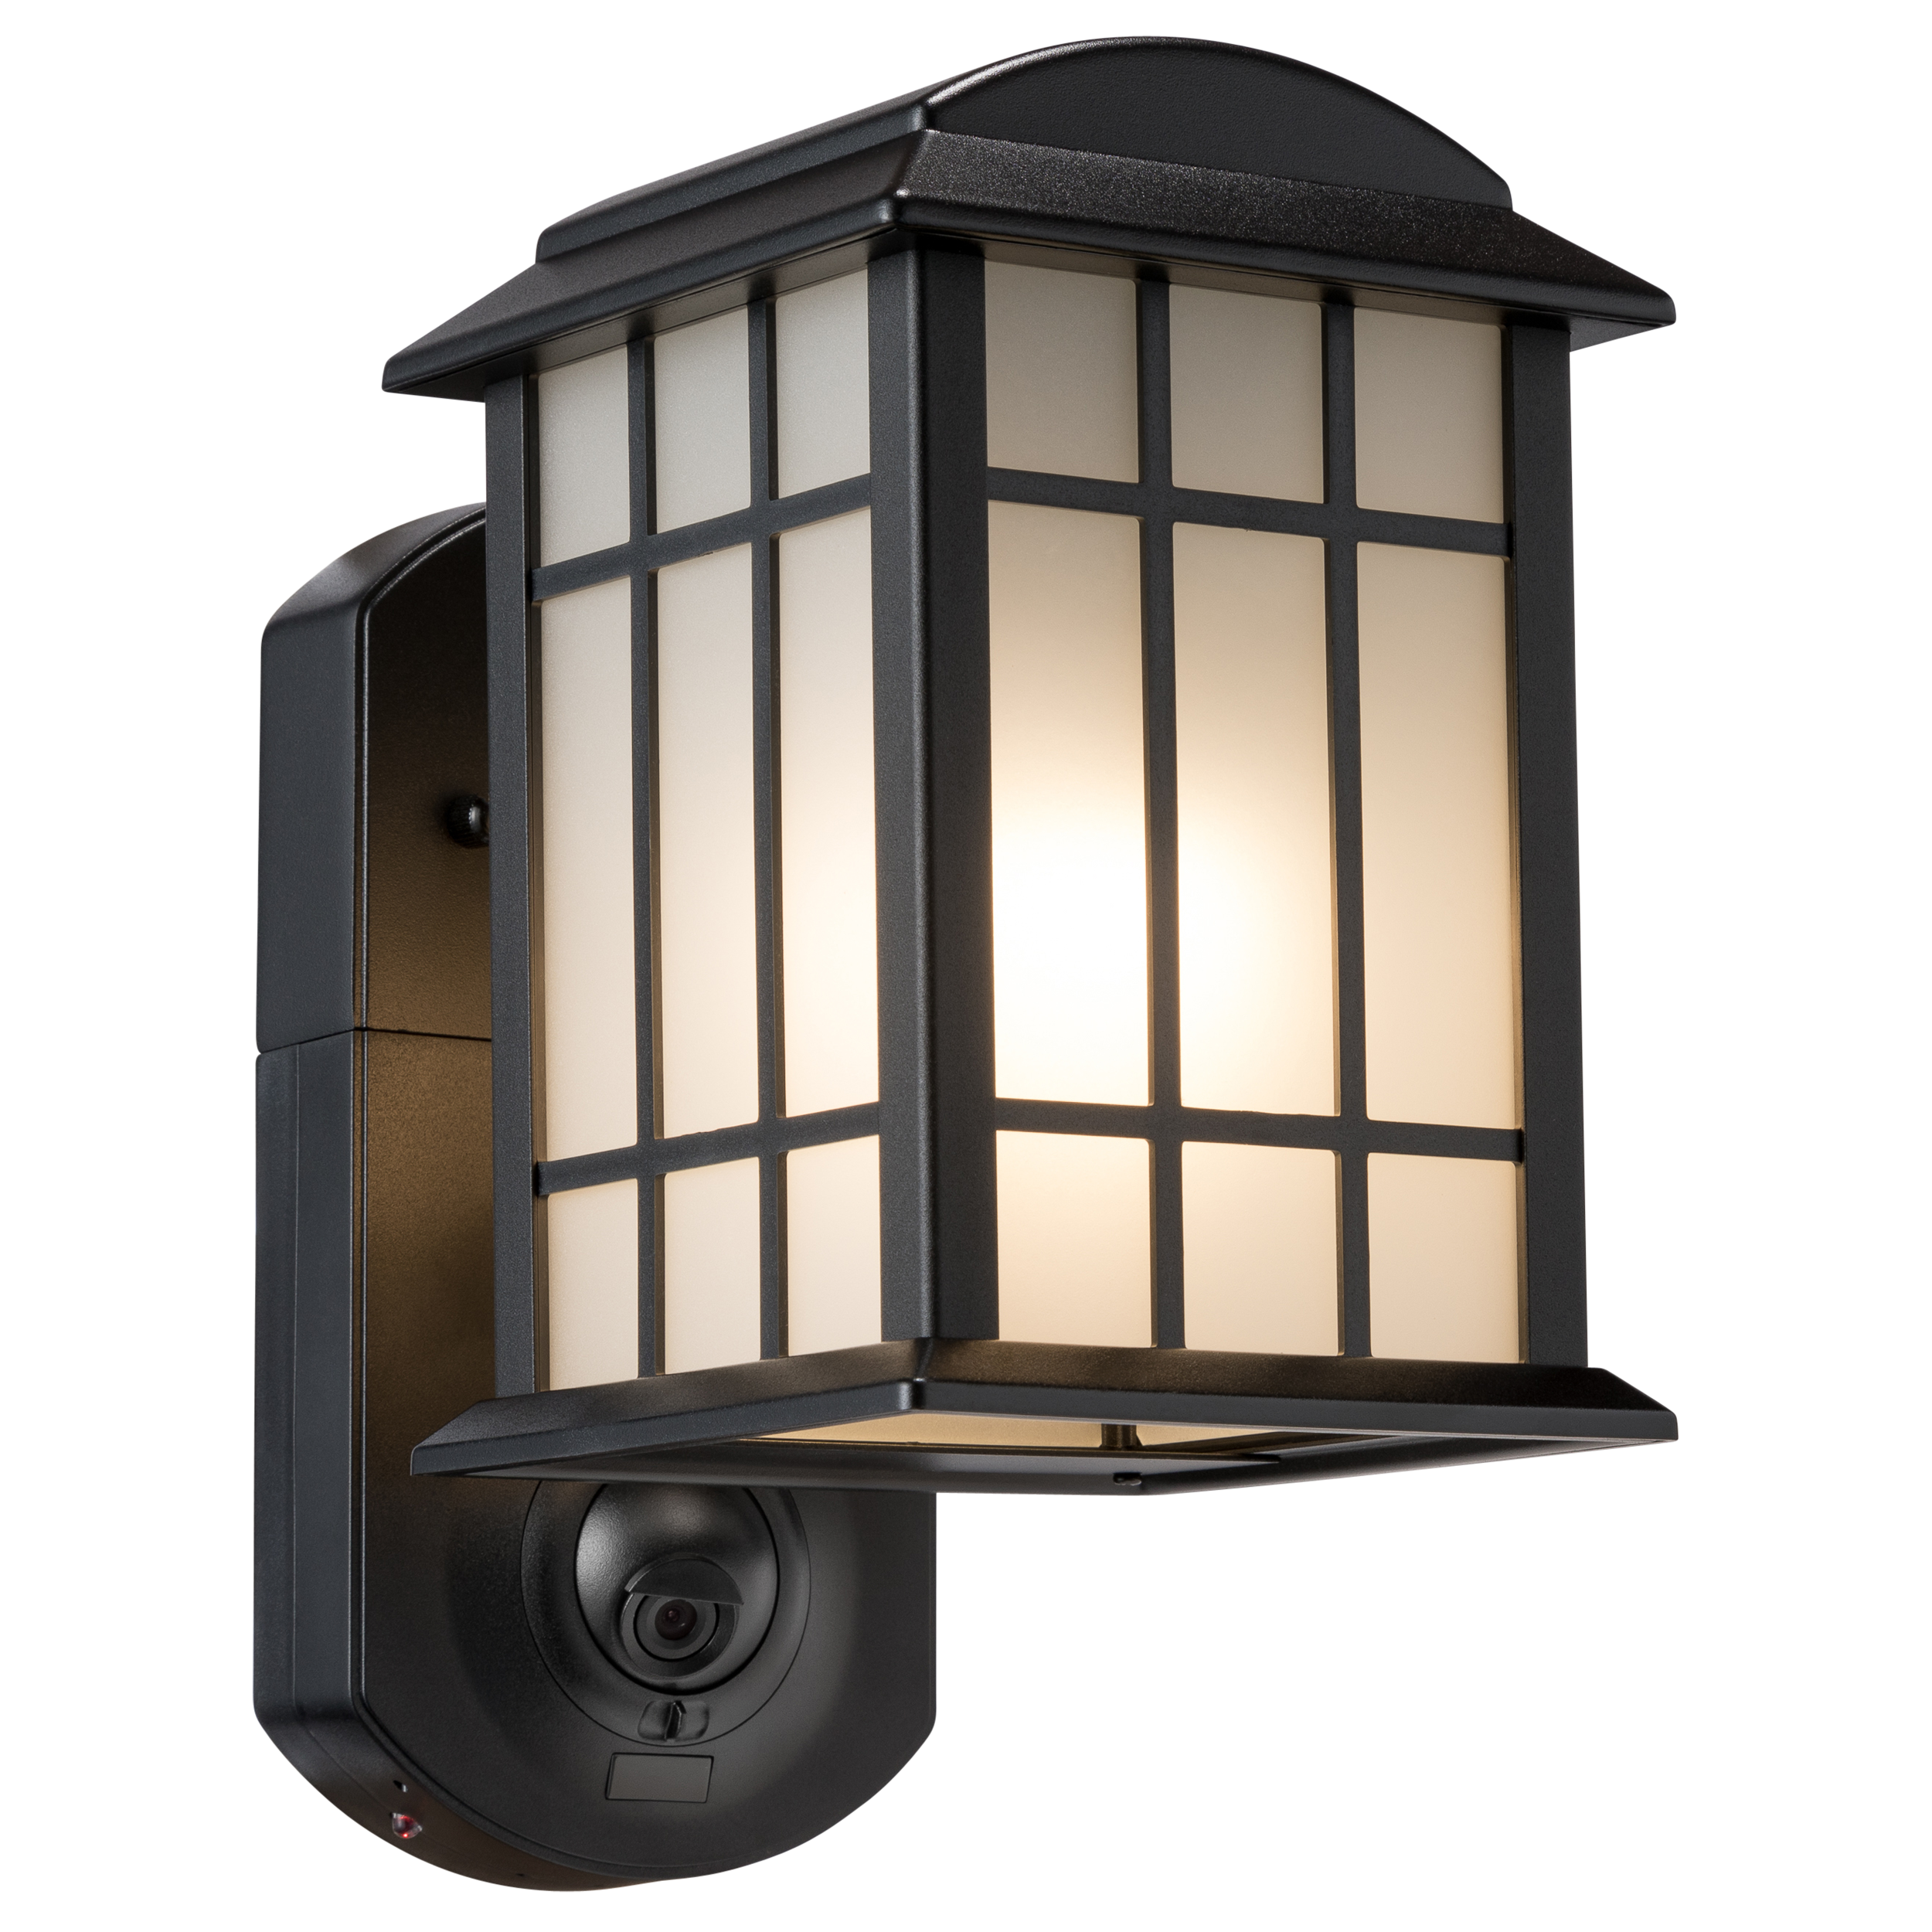 Maximus Maximus Craftsman Smart Security Light